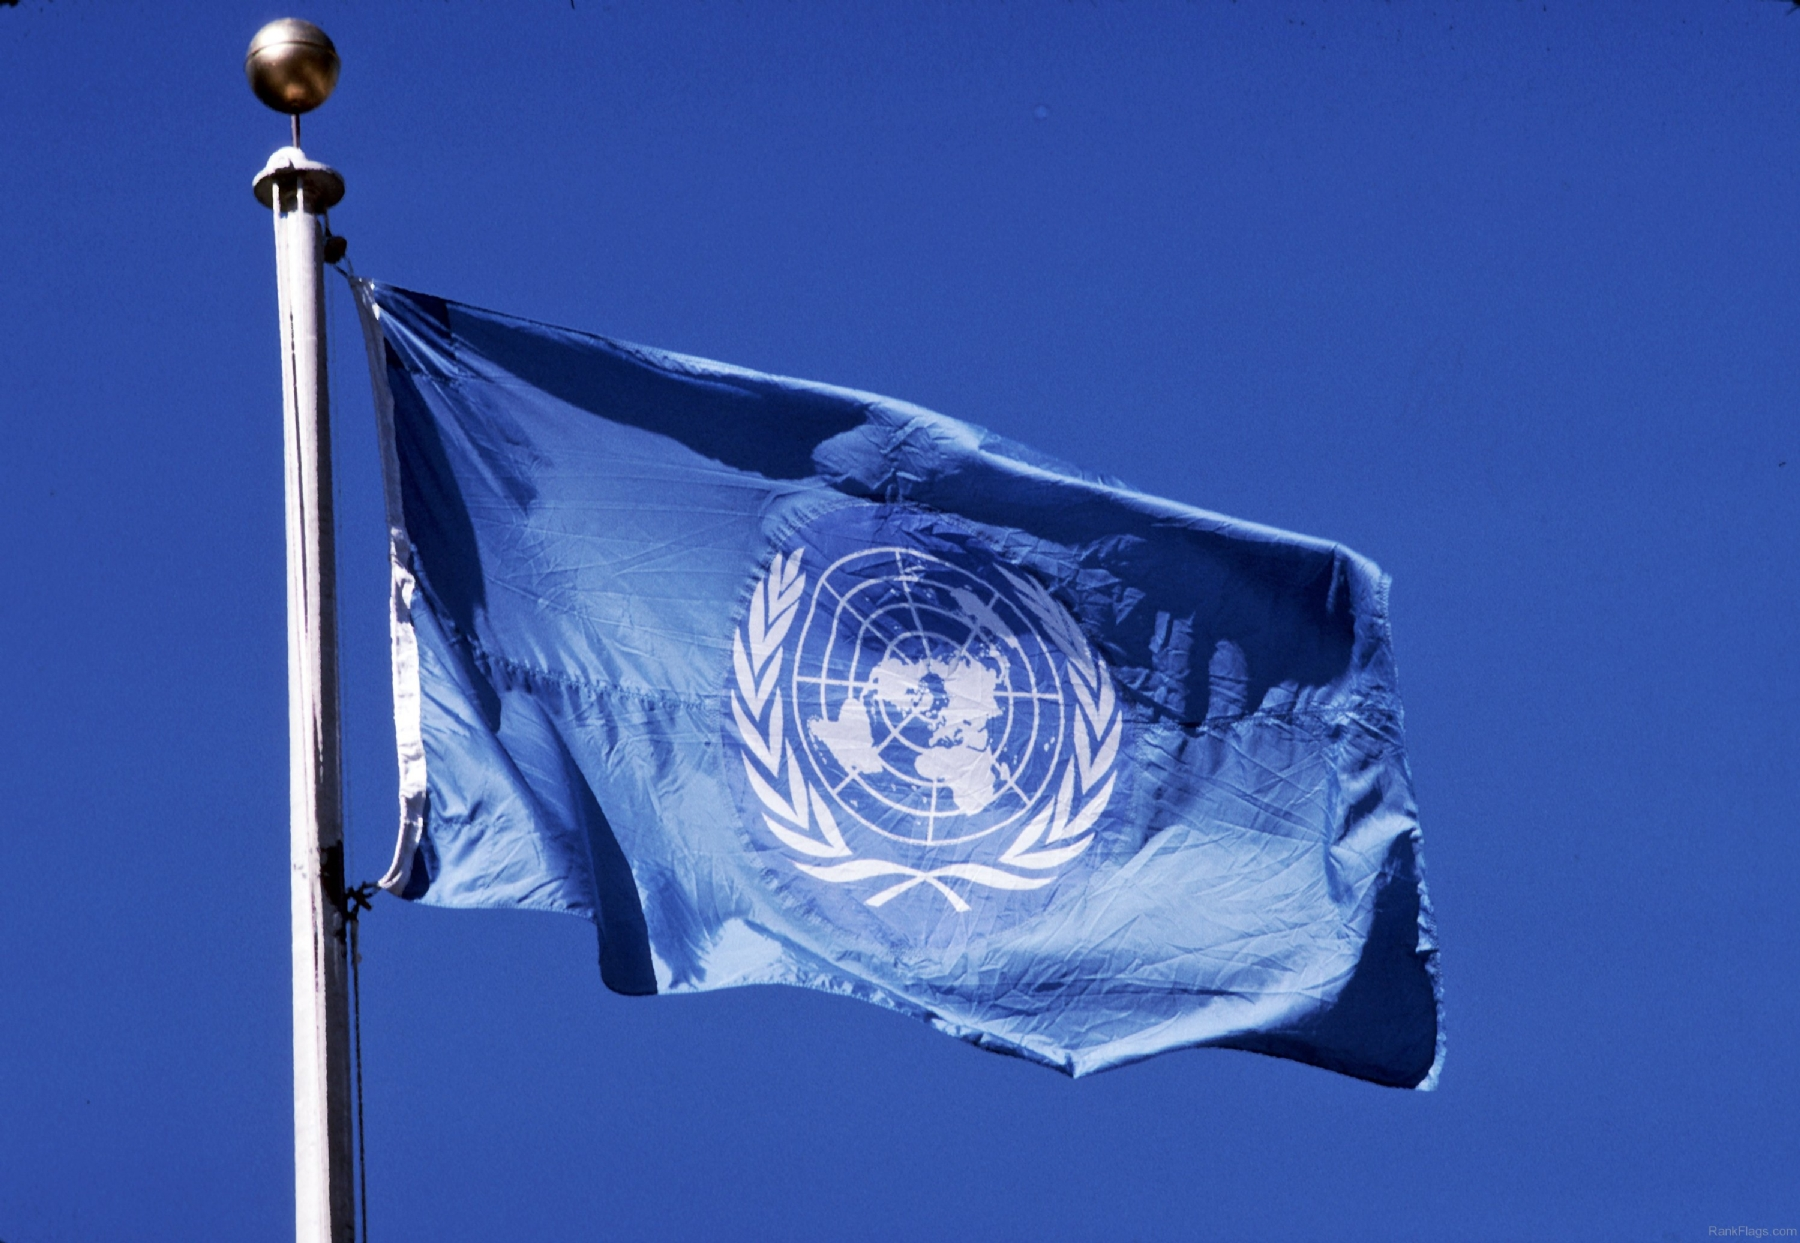 United Nation's flag to be flown on Government buildings on UN Day along with Indian Tricolor